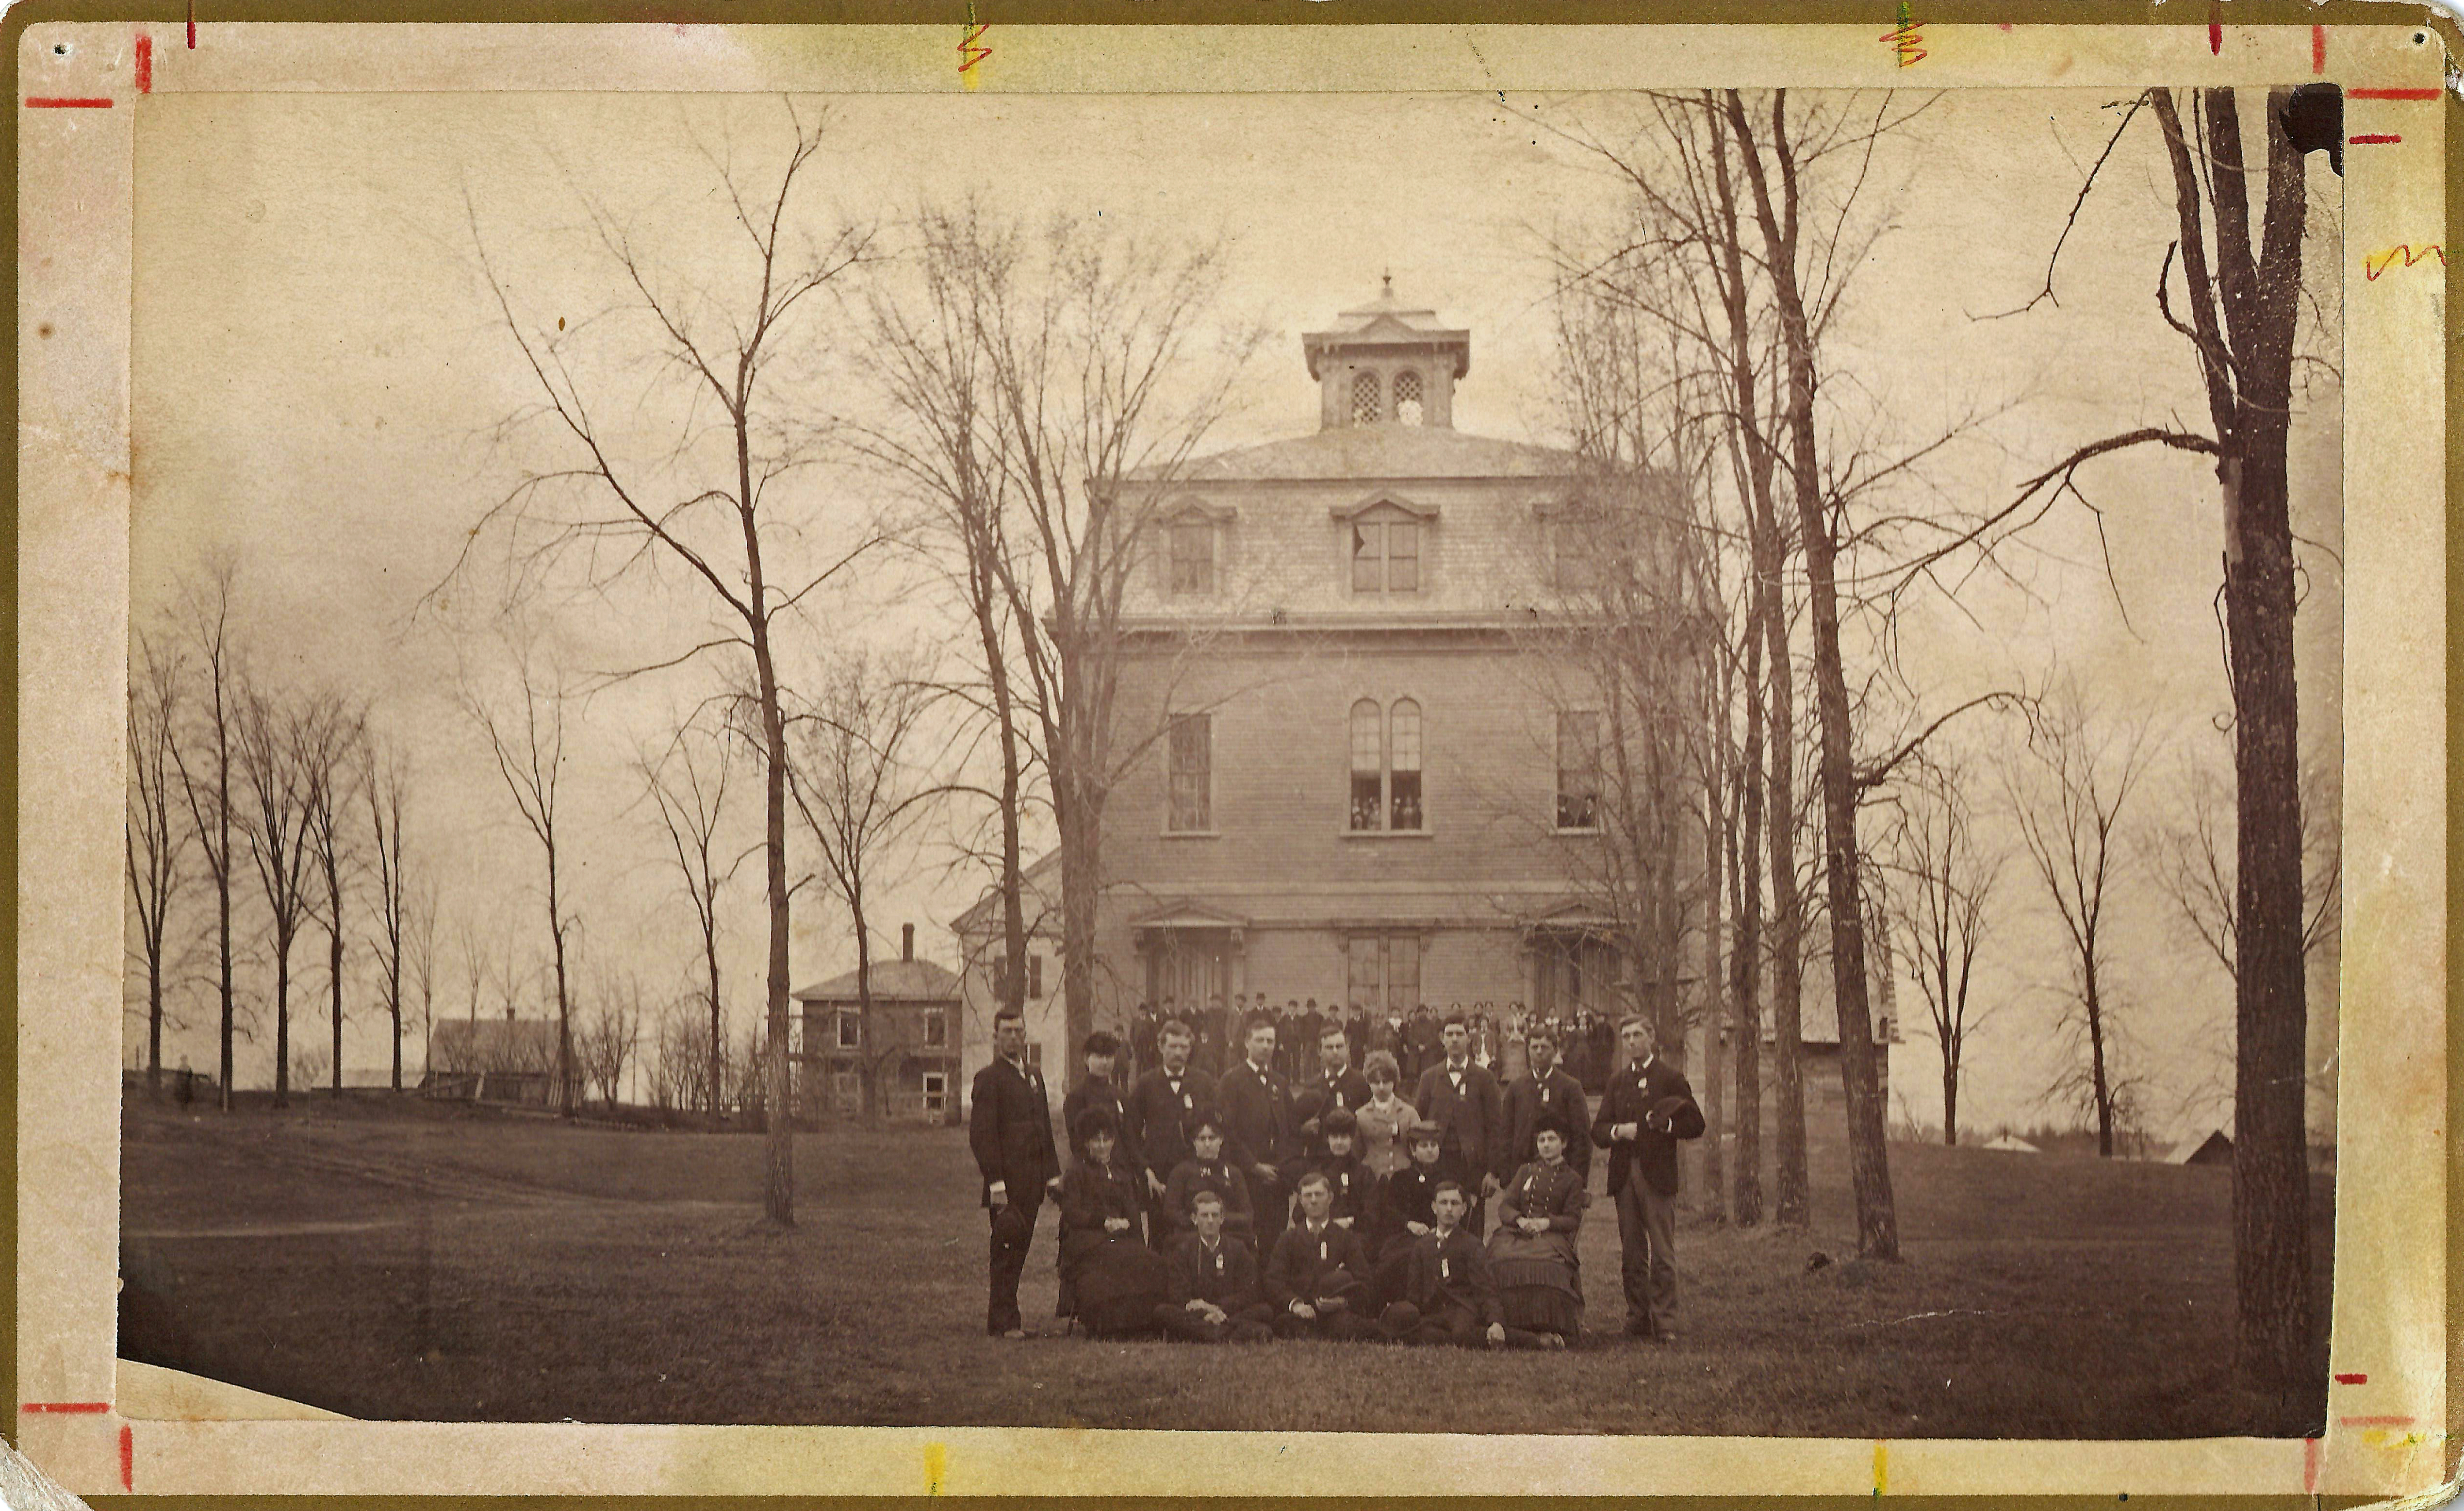 Houlton Academy Class of 1883